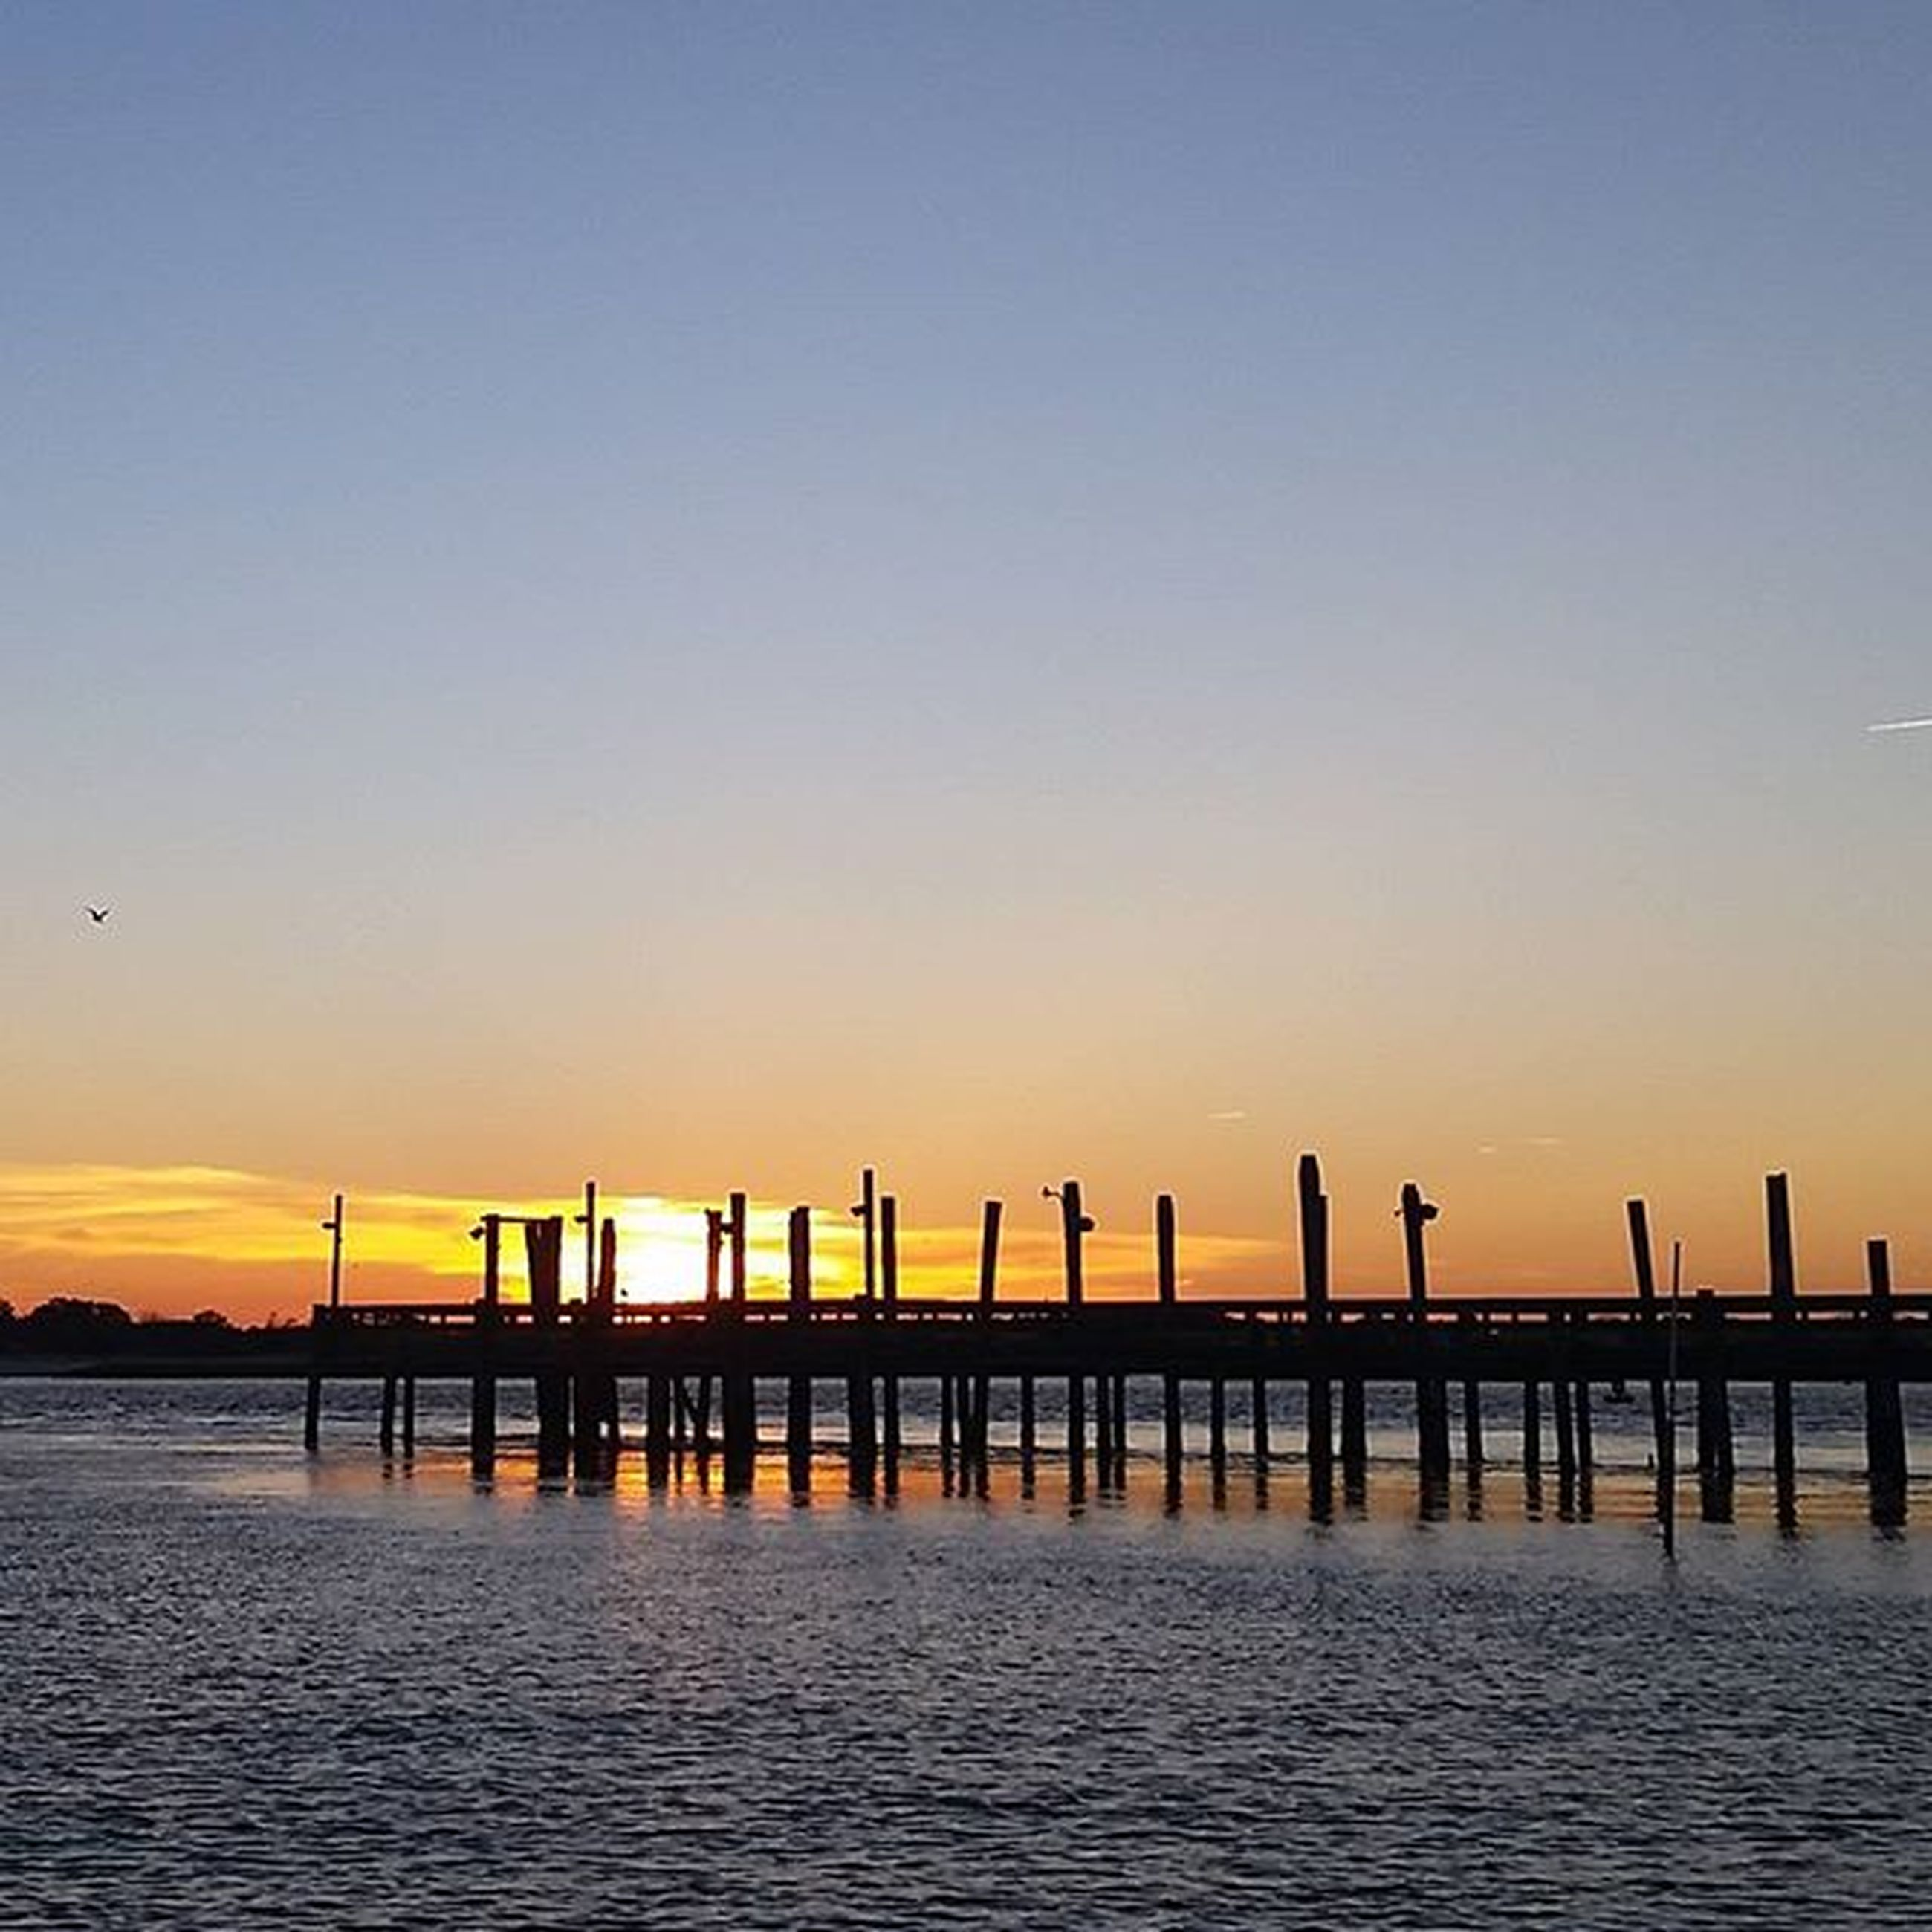 water, sunset, sea, copy space, pier, clear sky, scenics, tranquil scene, waterfront, tranquility, built structure, orange color, beauty in nature, nature, architecture, idyllic, bird, horizon over water, silhouette, incidental people